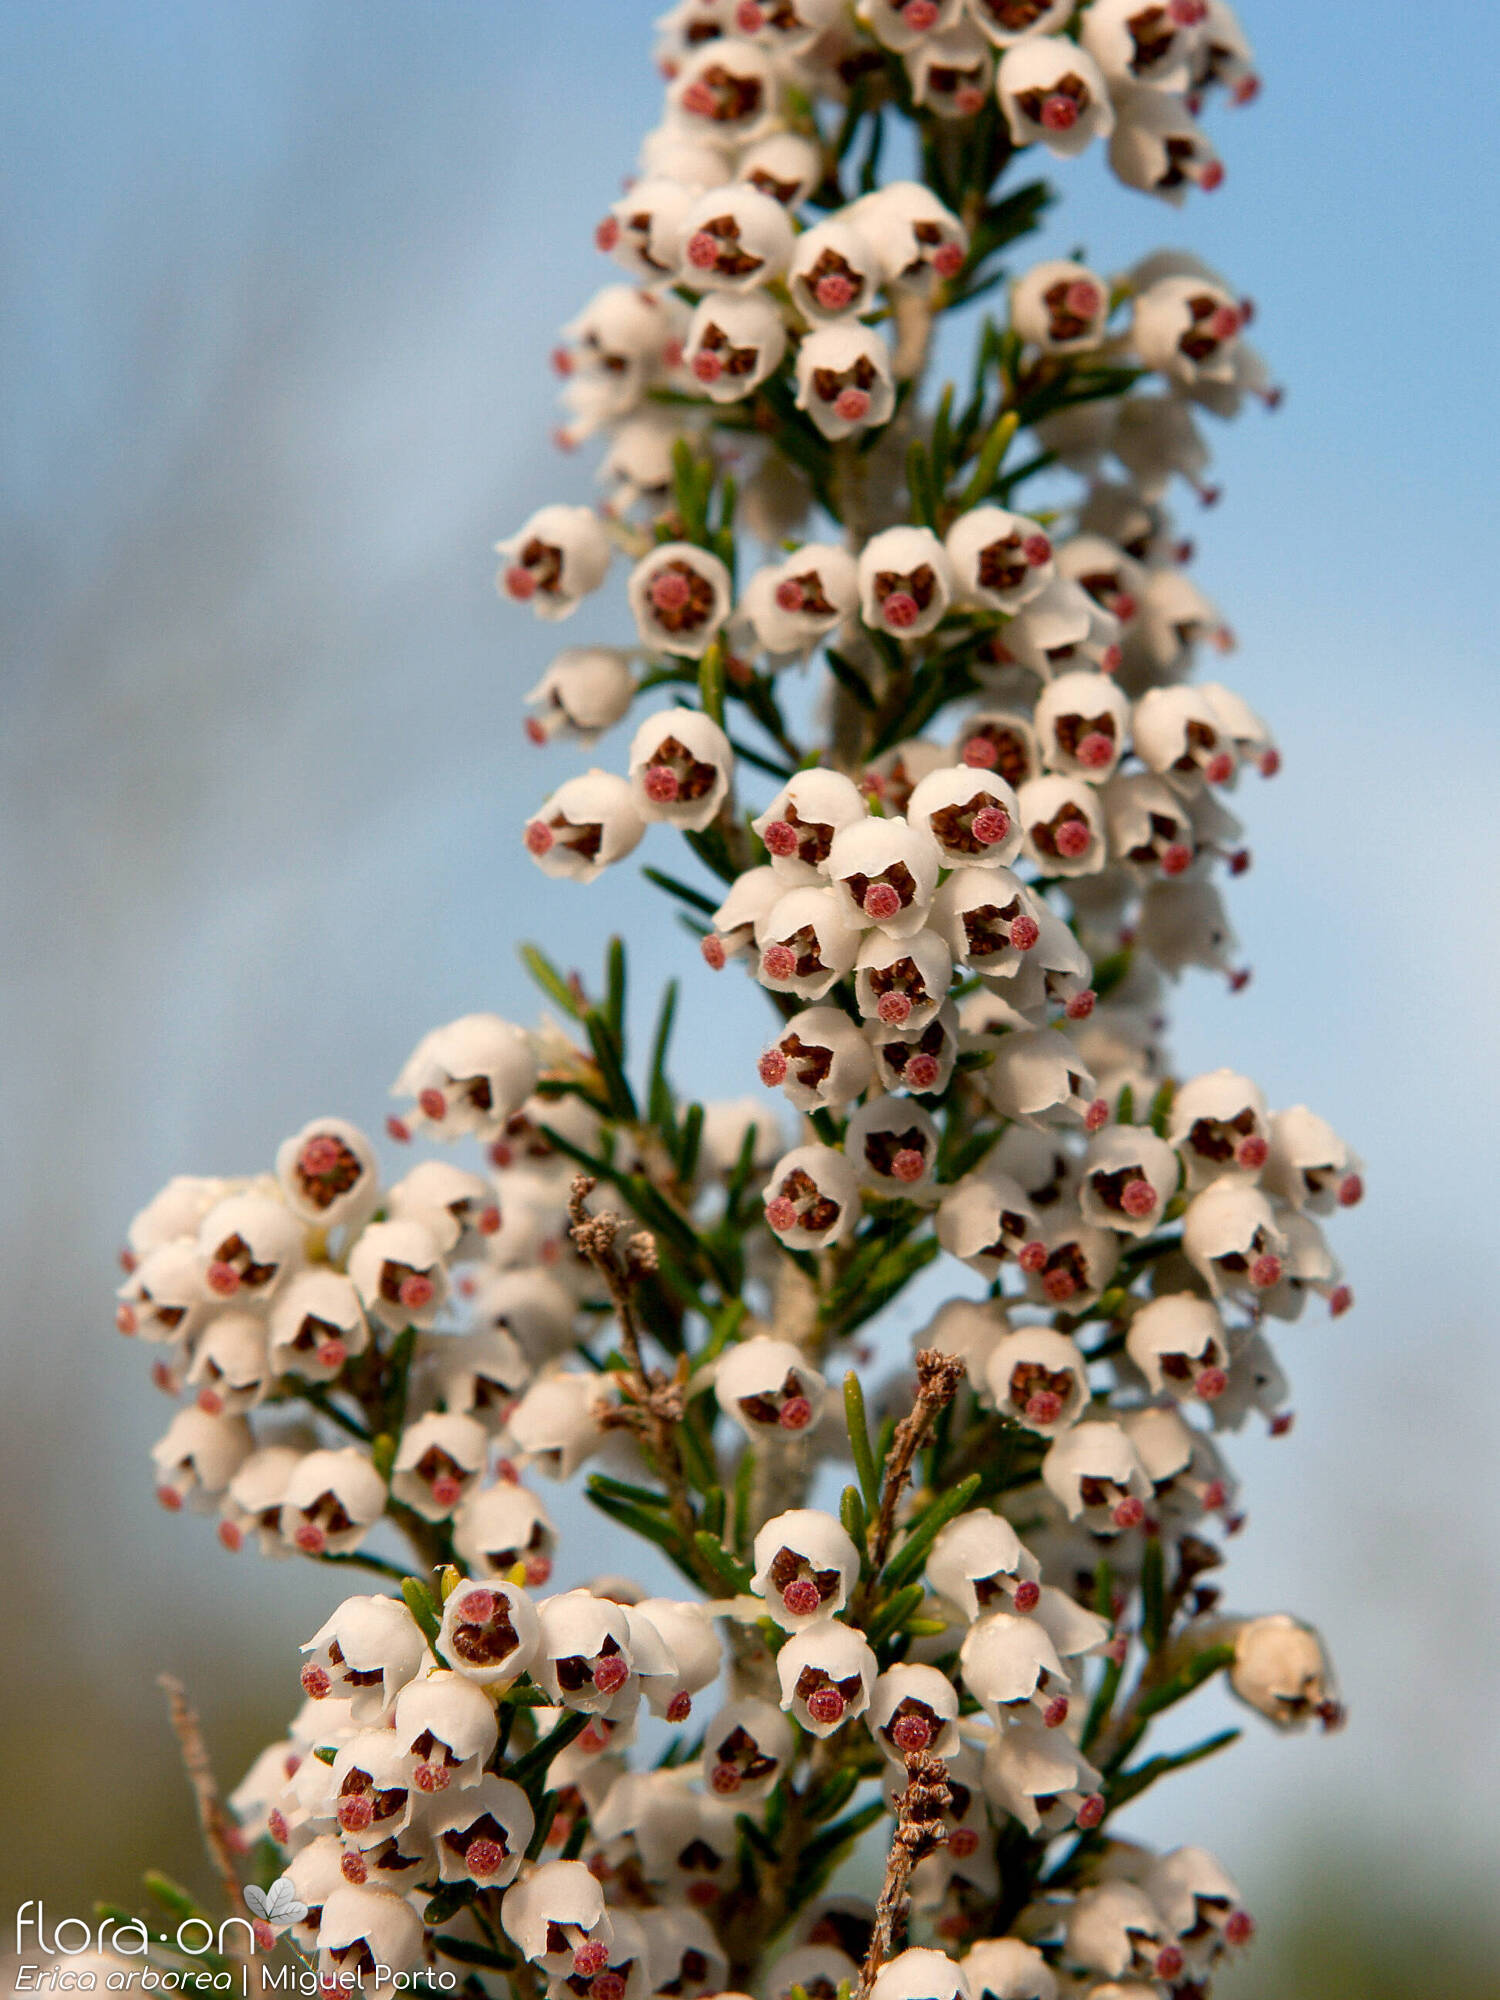 Erica arborea - Flor (close-up) | Miguel Porto; CC BY-NC 4.0